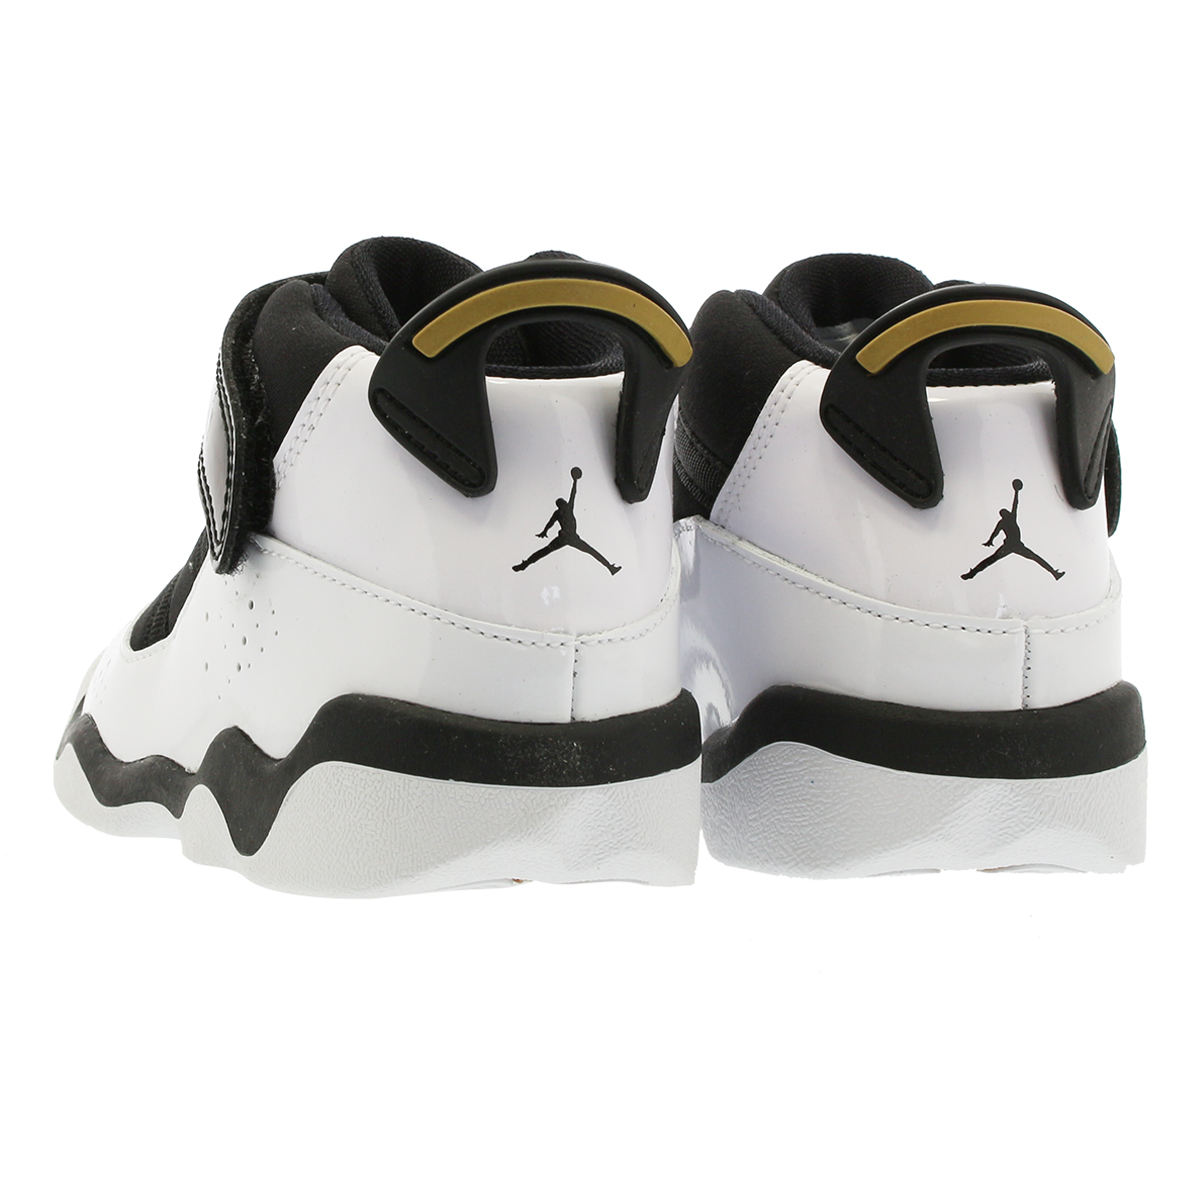 cd443cd8a7f LOWTEX PLUS: NIKE JORDAN 6 RINGS GT Nike Jordan 6 RINGS Co.,Ltd. GT ...